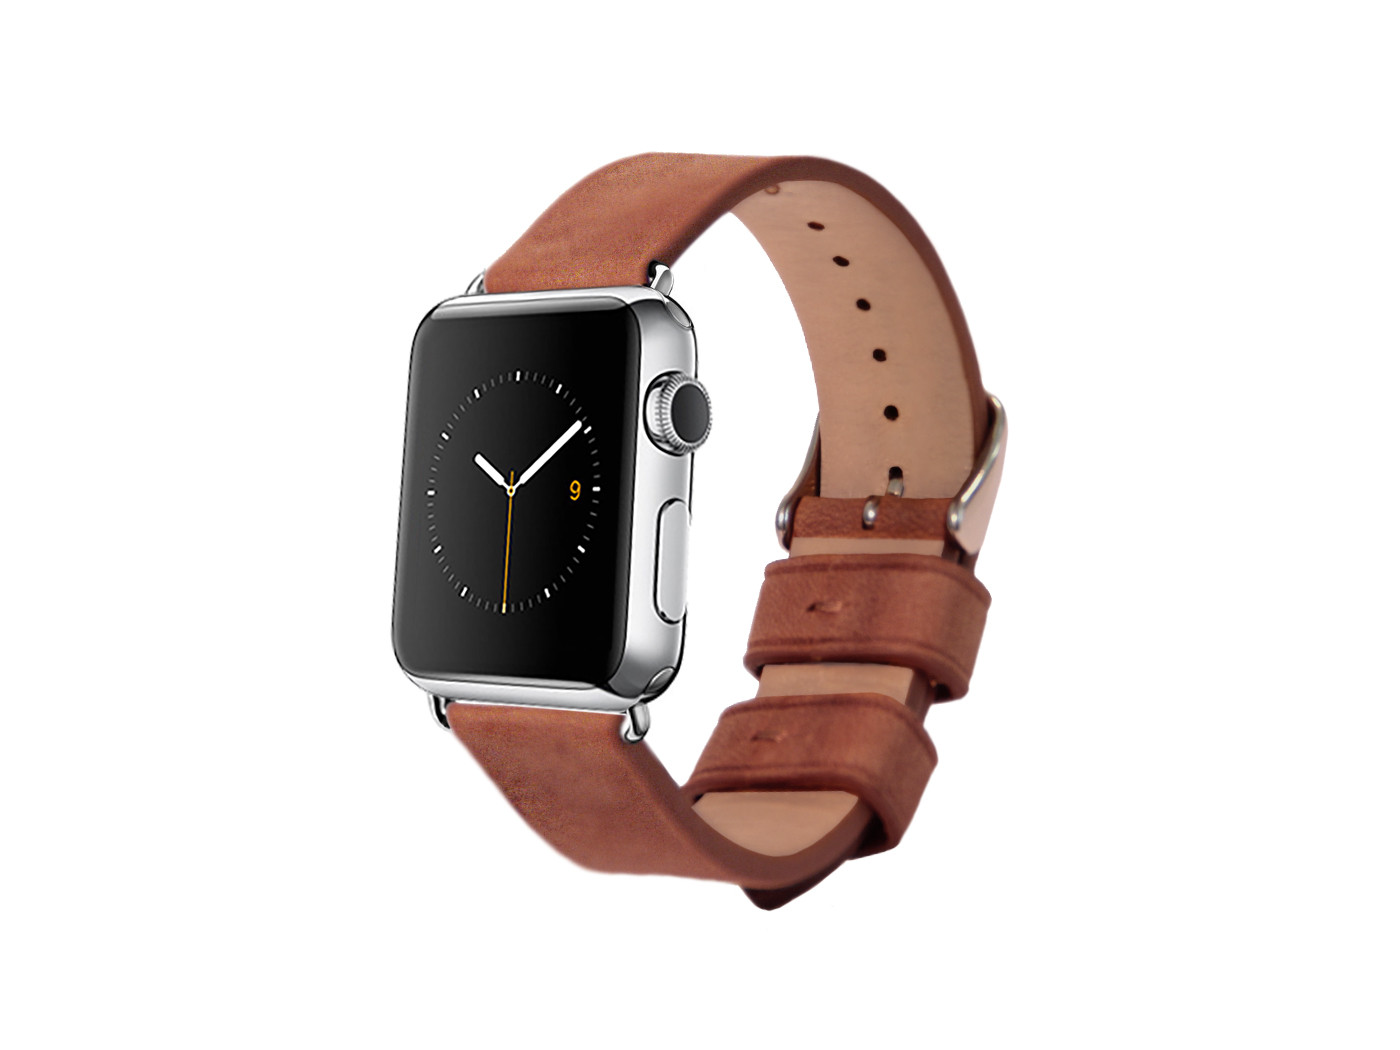 Apple Watch Bands/Bracelets has really cool third-party options